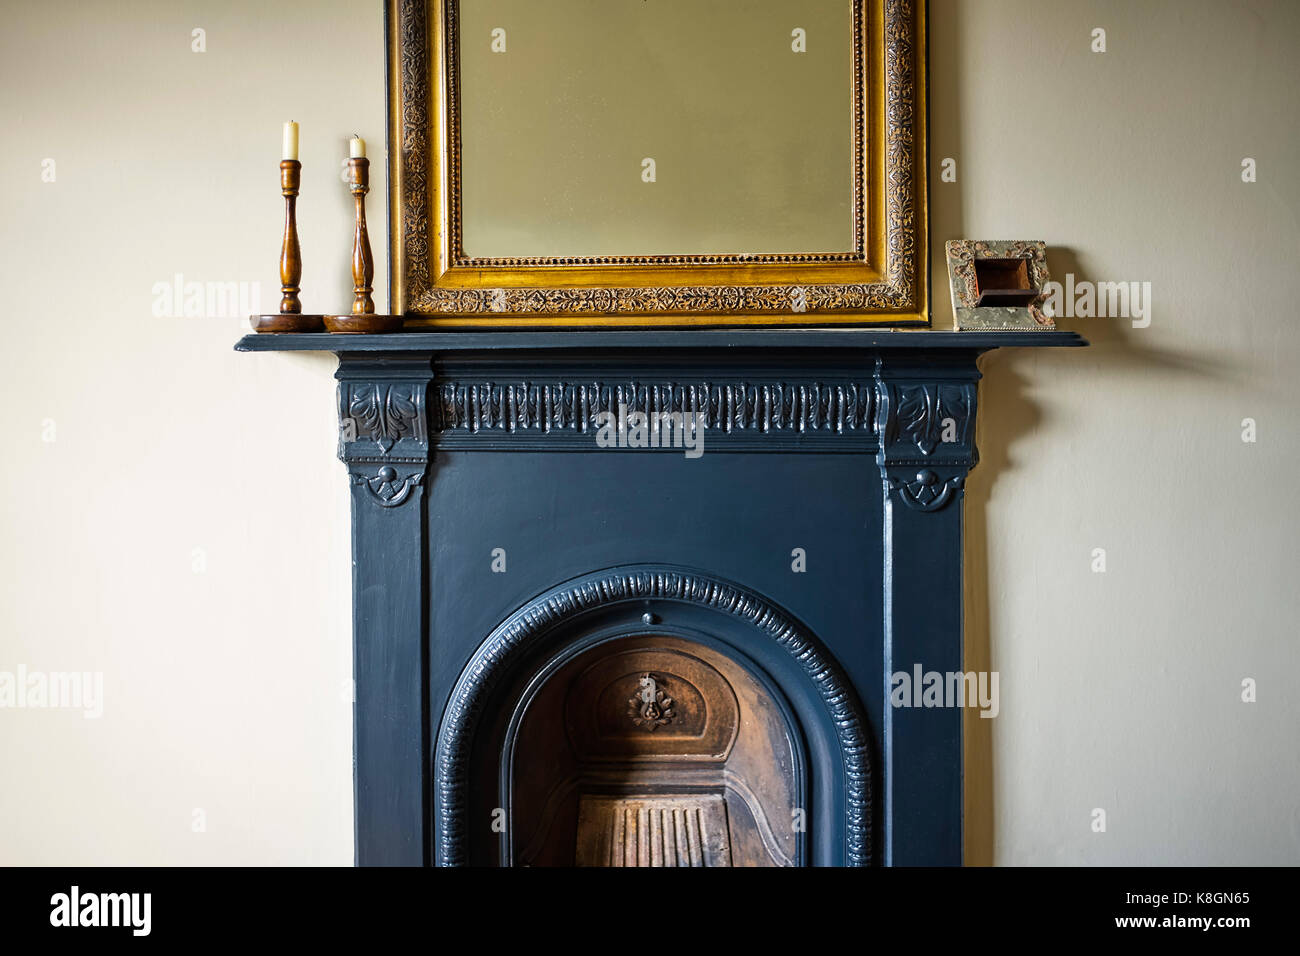 Bedroom cast iron fireplace with ornate French mirror above - Stock Image